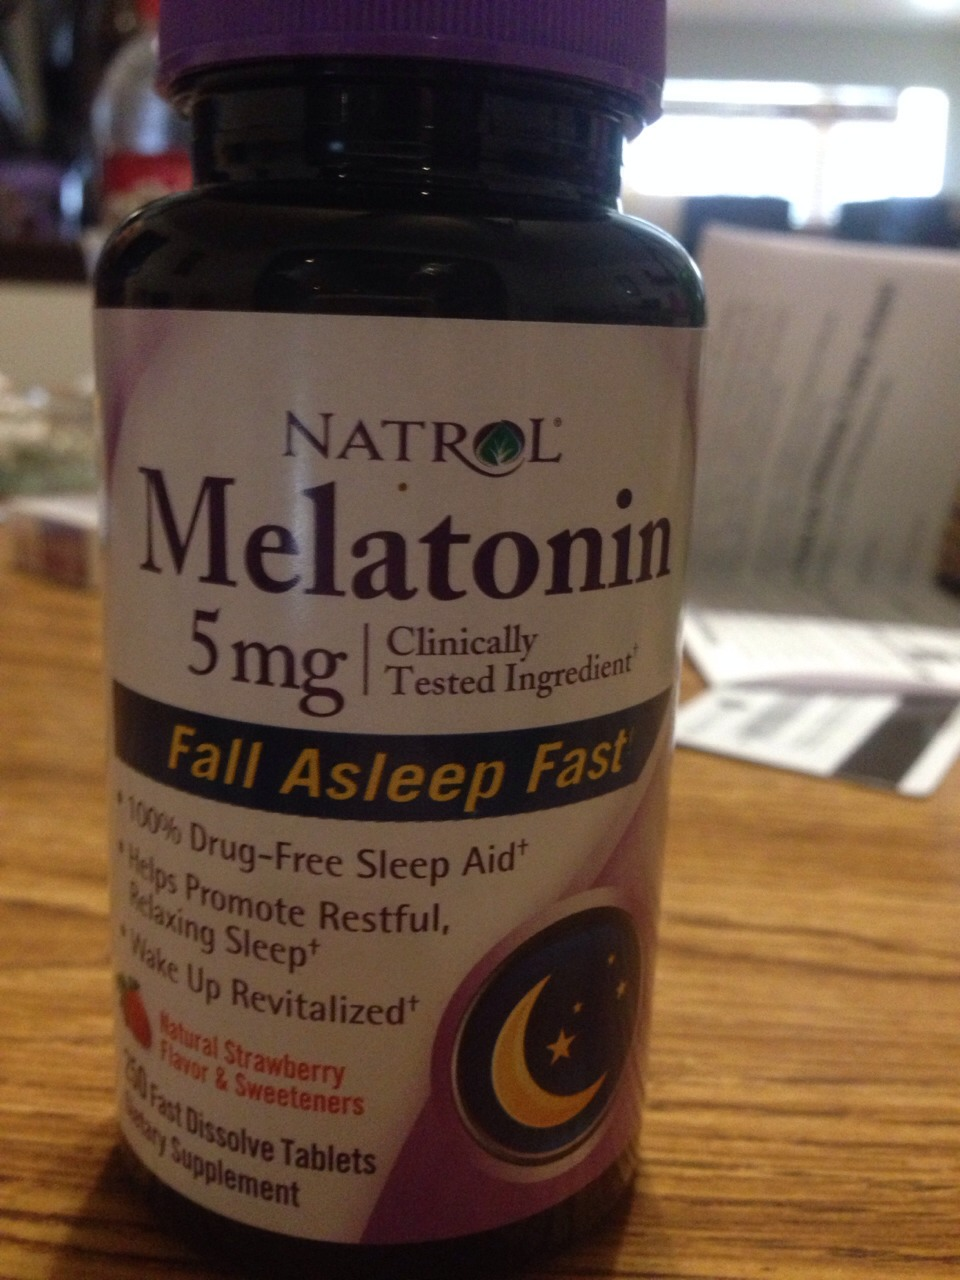 If you can't sleep, can't calm down your thoughts or if you can't get your little ones to sleep try melatonin. A full 5 mg chewable tablet for adults and a half a 5mg chewable tablet for little ones. Advice from a doctor. It works wonders.